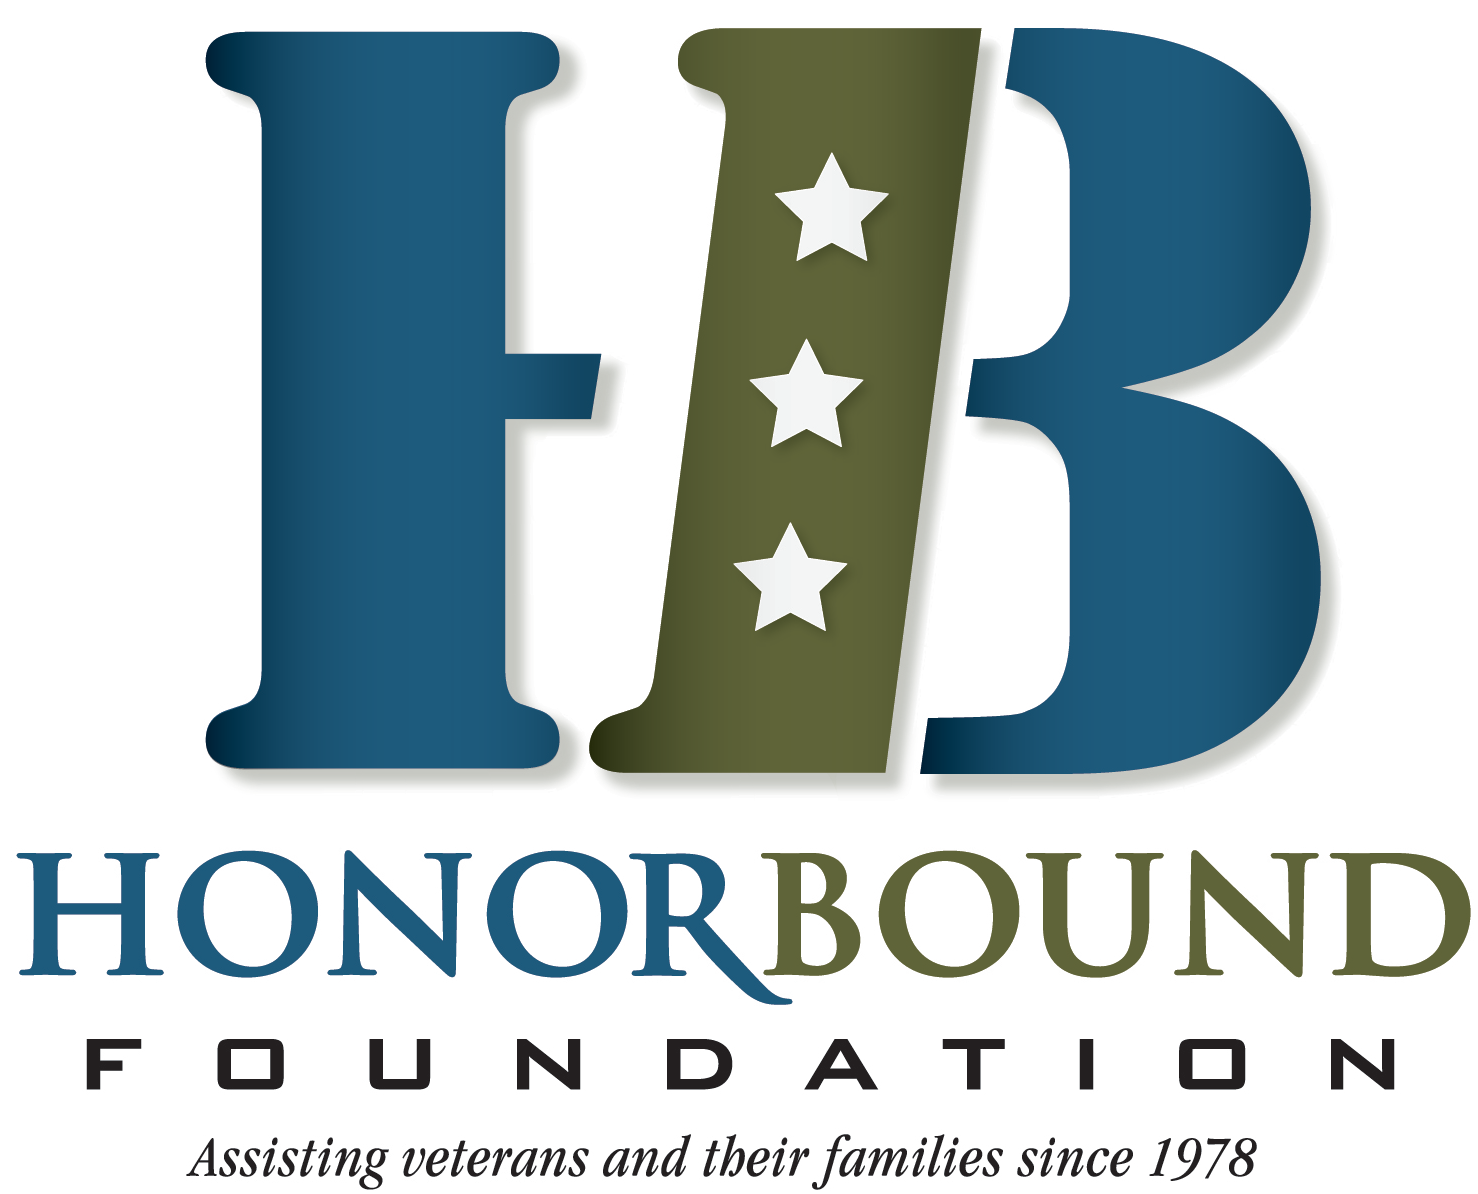 Virginia Car Donations - HonorBound Foundation - DonatecarUSA.com